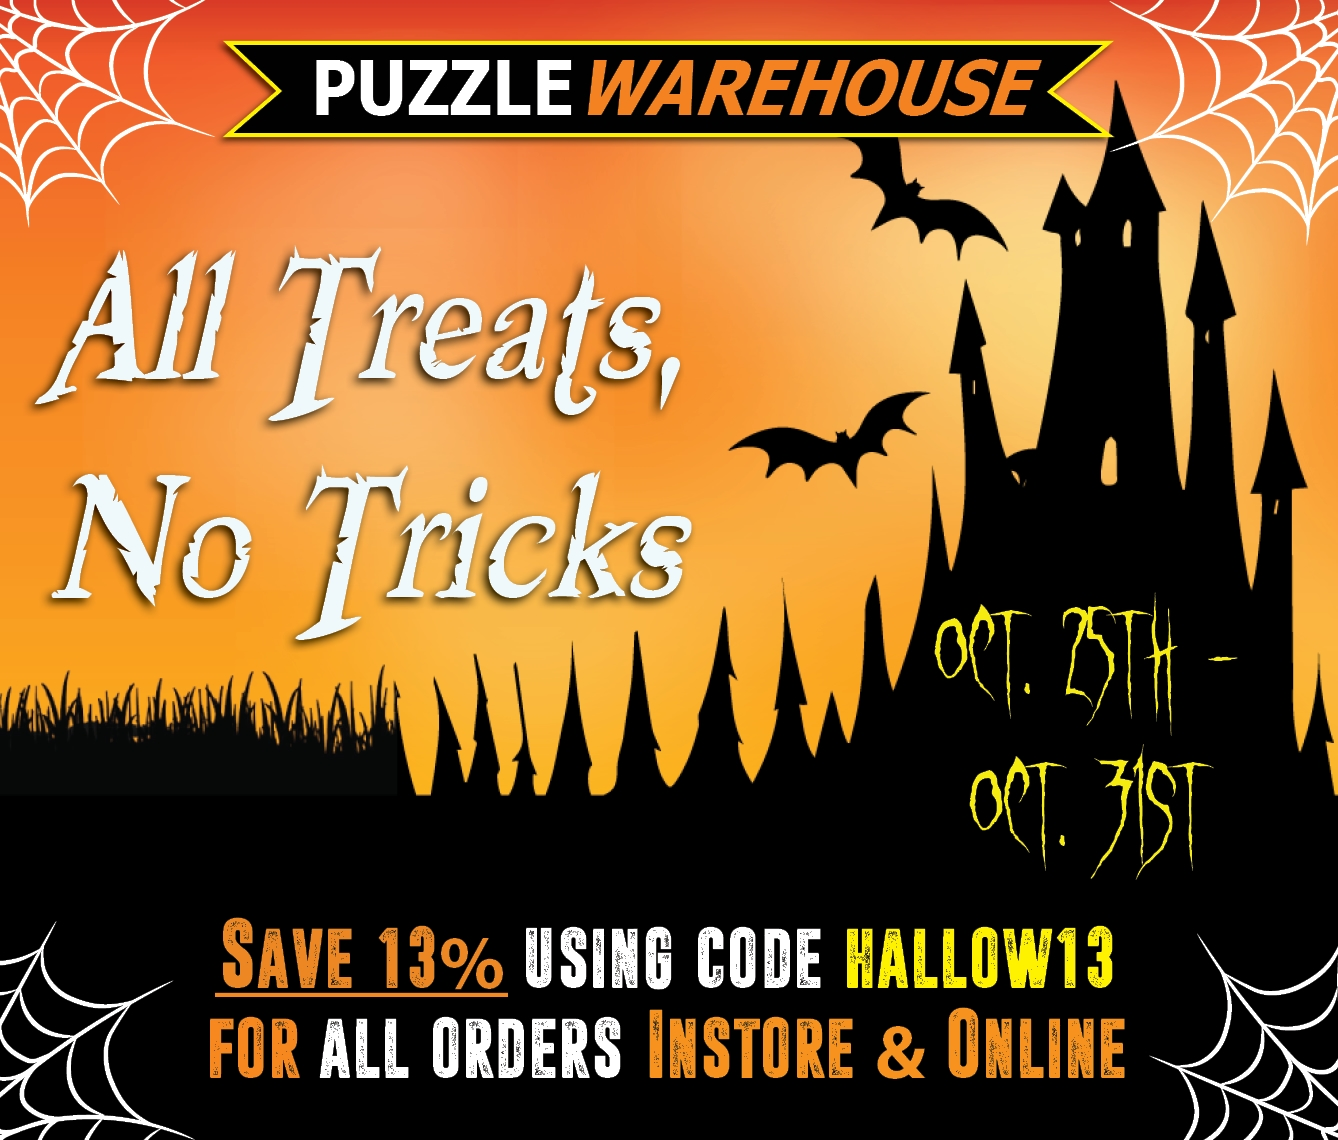 Puzzle warehouse coupon code